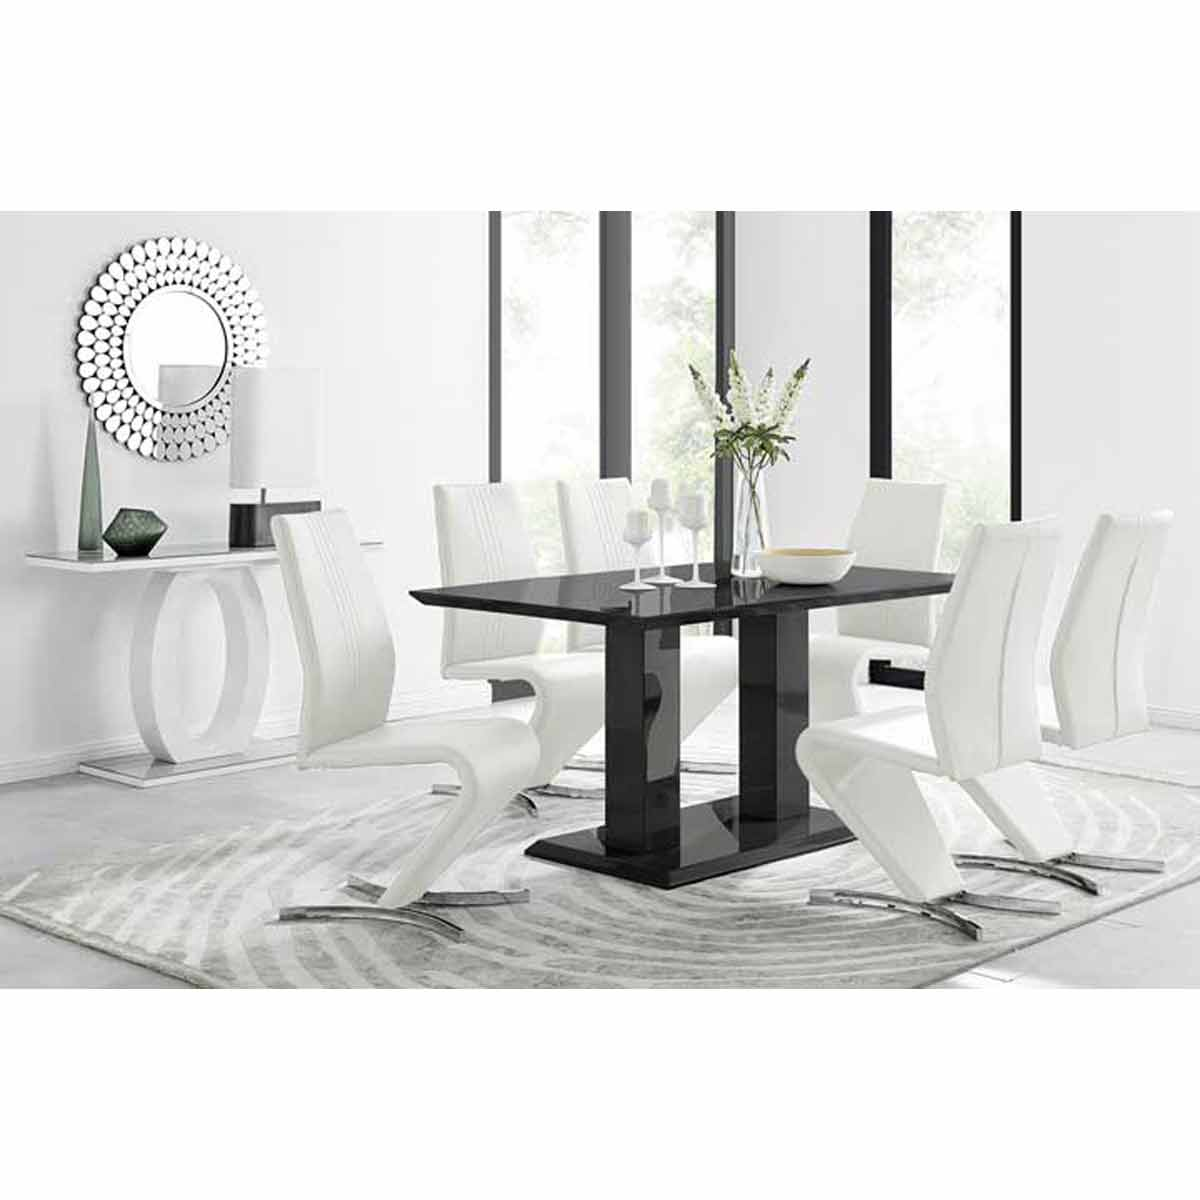 Furniture Box Imperia Black High Gloss Dining Table And 6 White Luxury Willow Dining Chairs Set